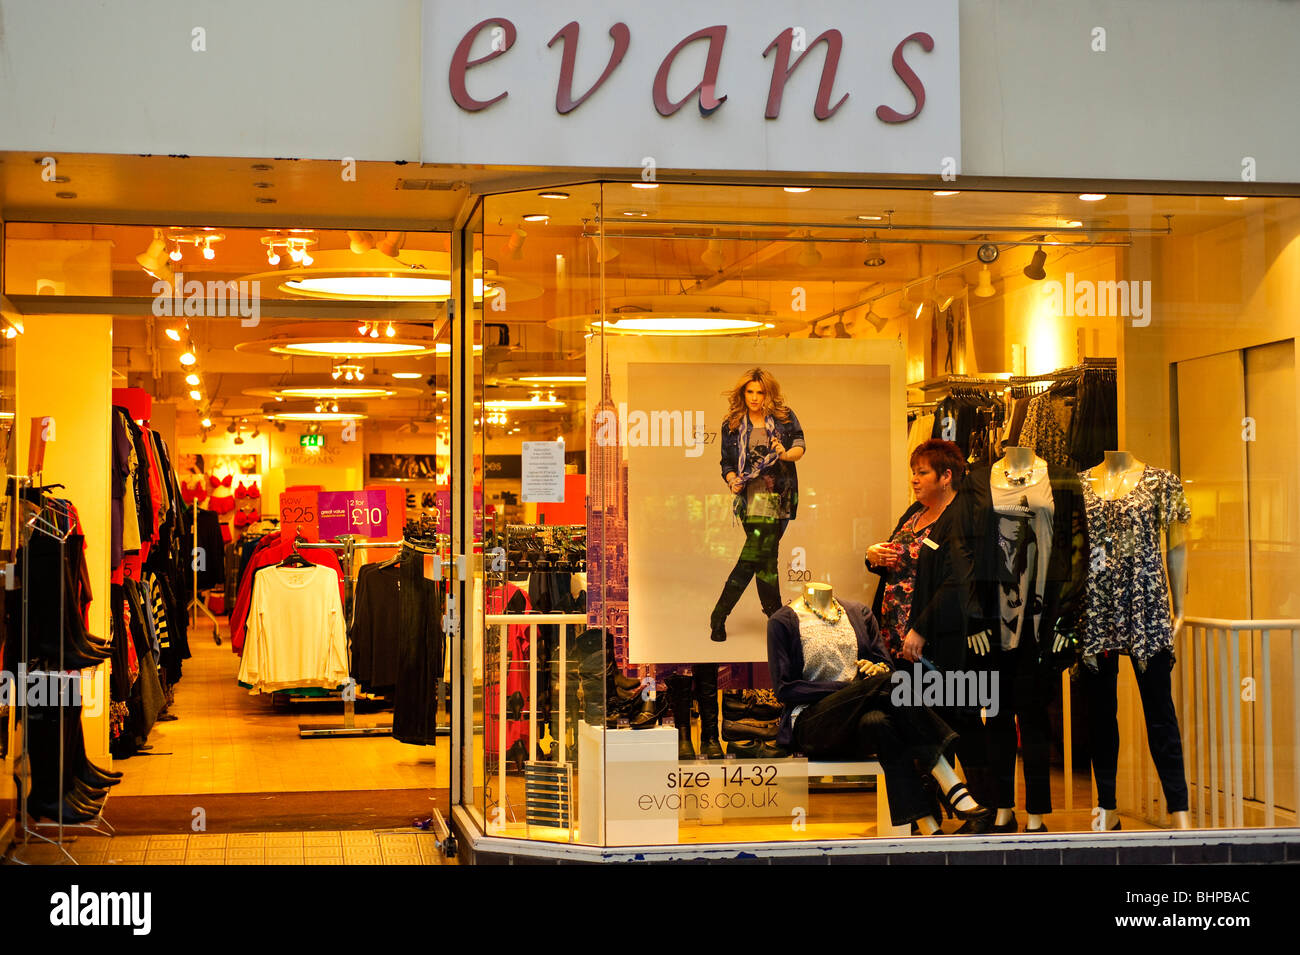 evans womens high street retail clothes shop, UK - Stock Image